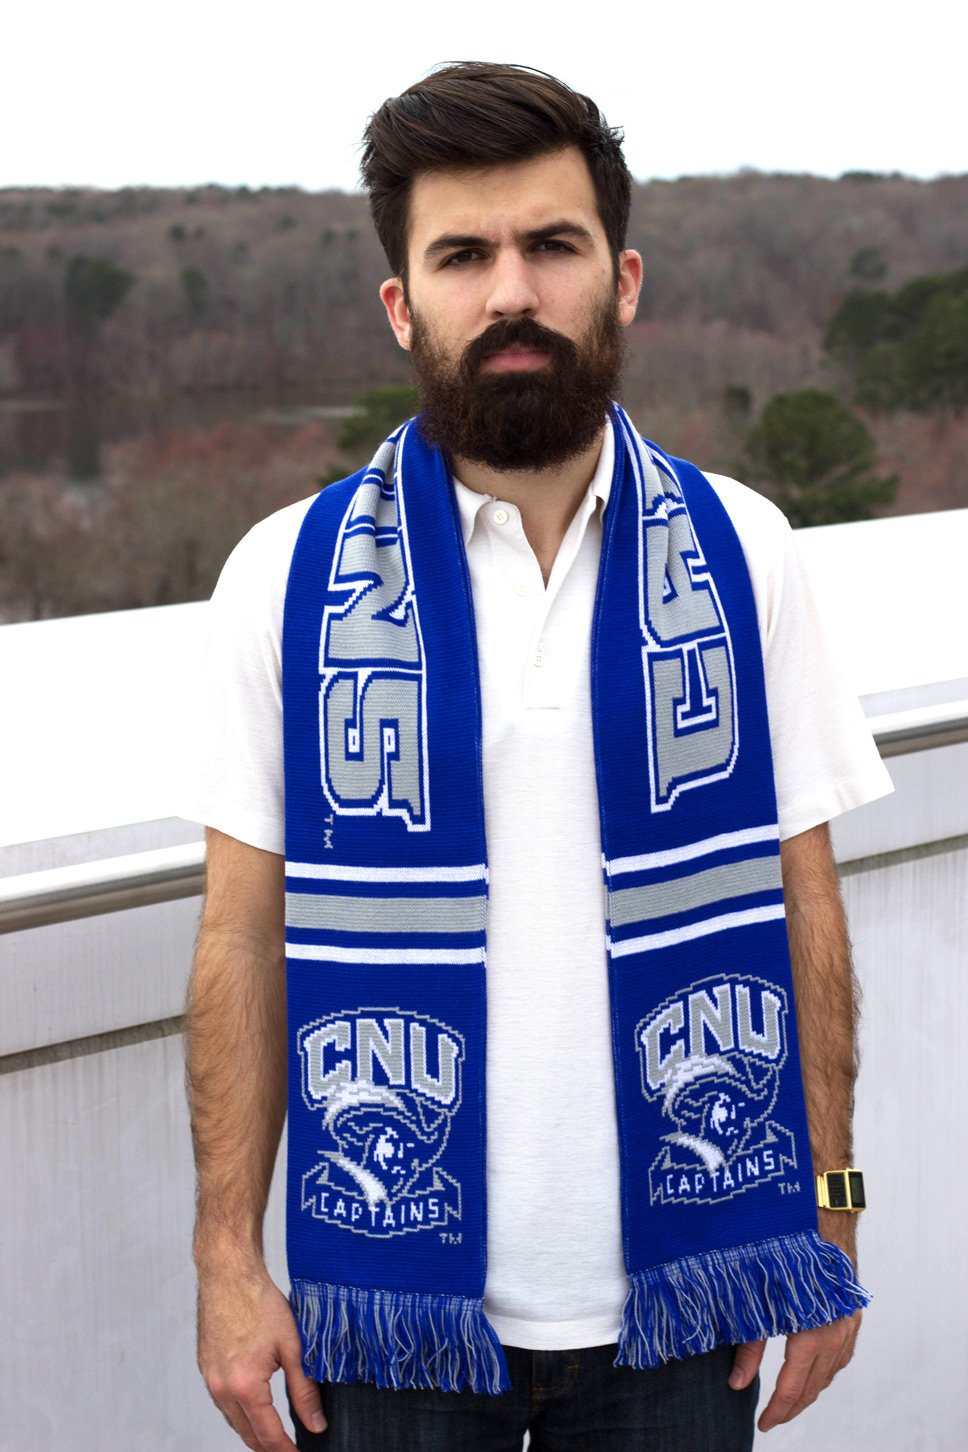 CNU Captains Knitted Classic Christopher Newport University Scarf